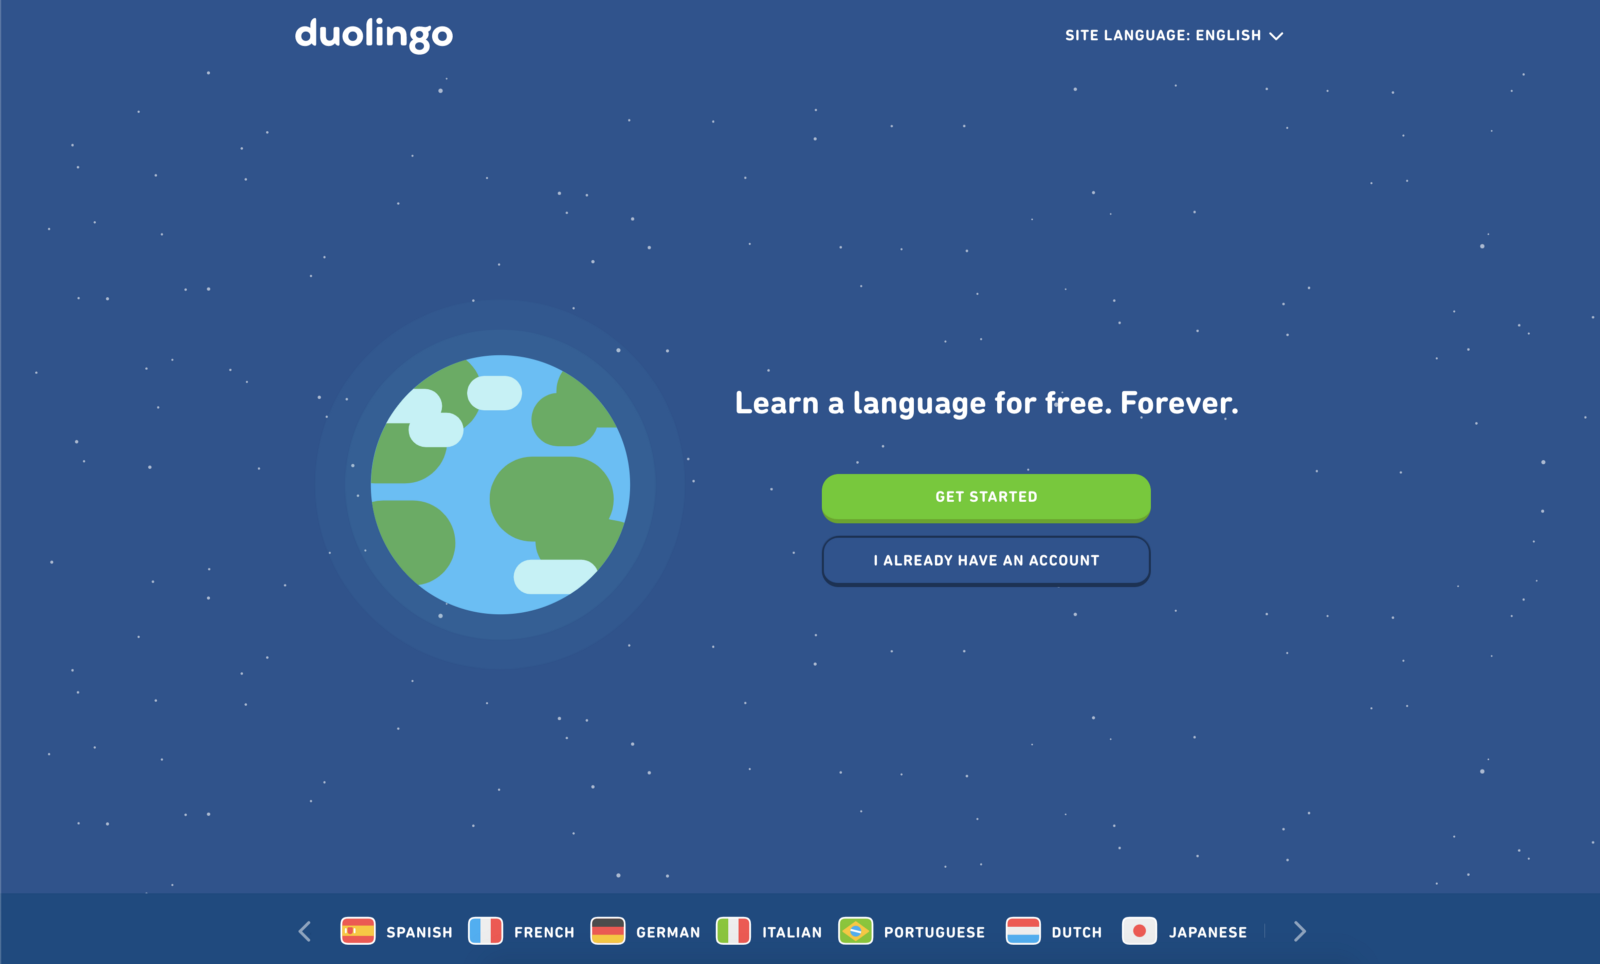 Duolingo: Learn a language for free. Forever.